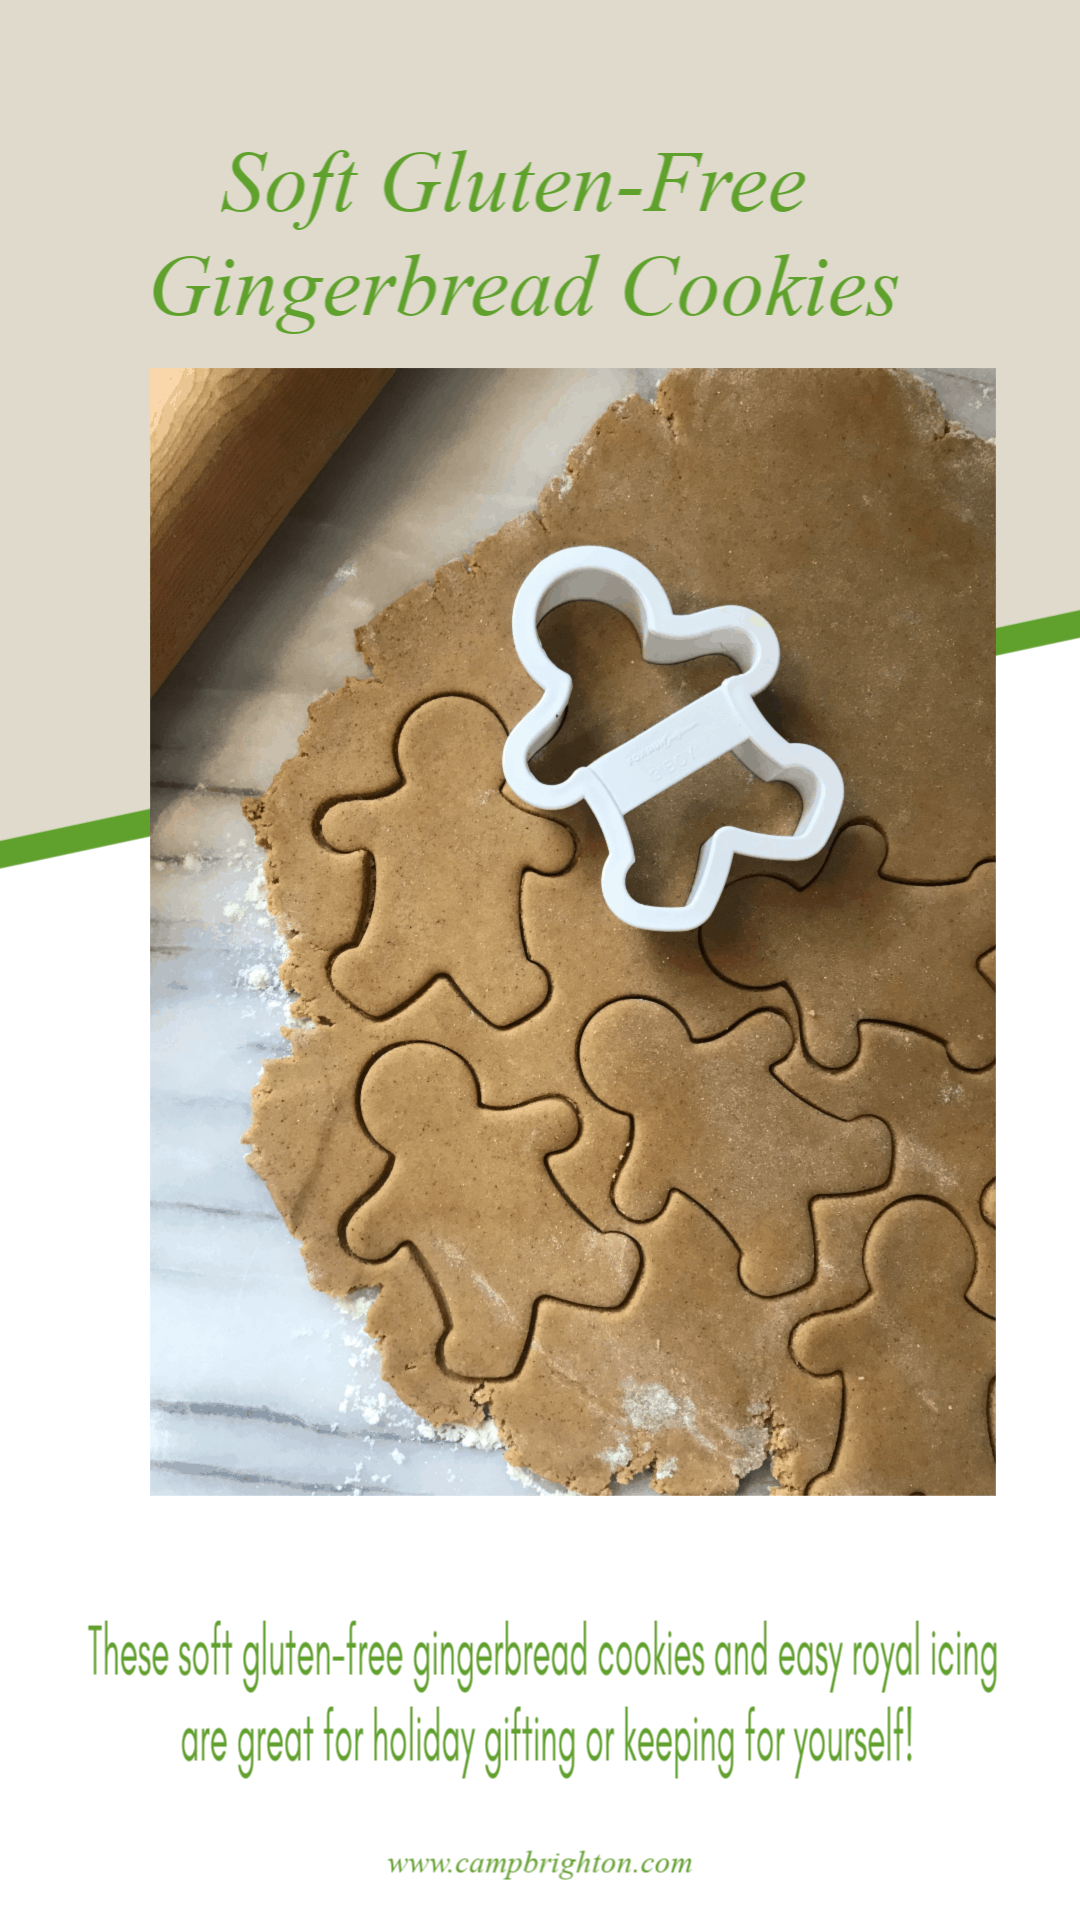 Soft Gluten-free Gingerbread Cookies With Easy Royal Icing